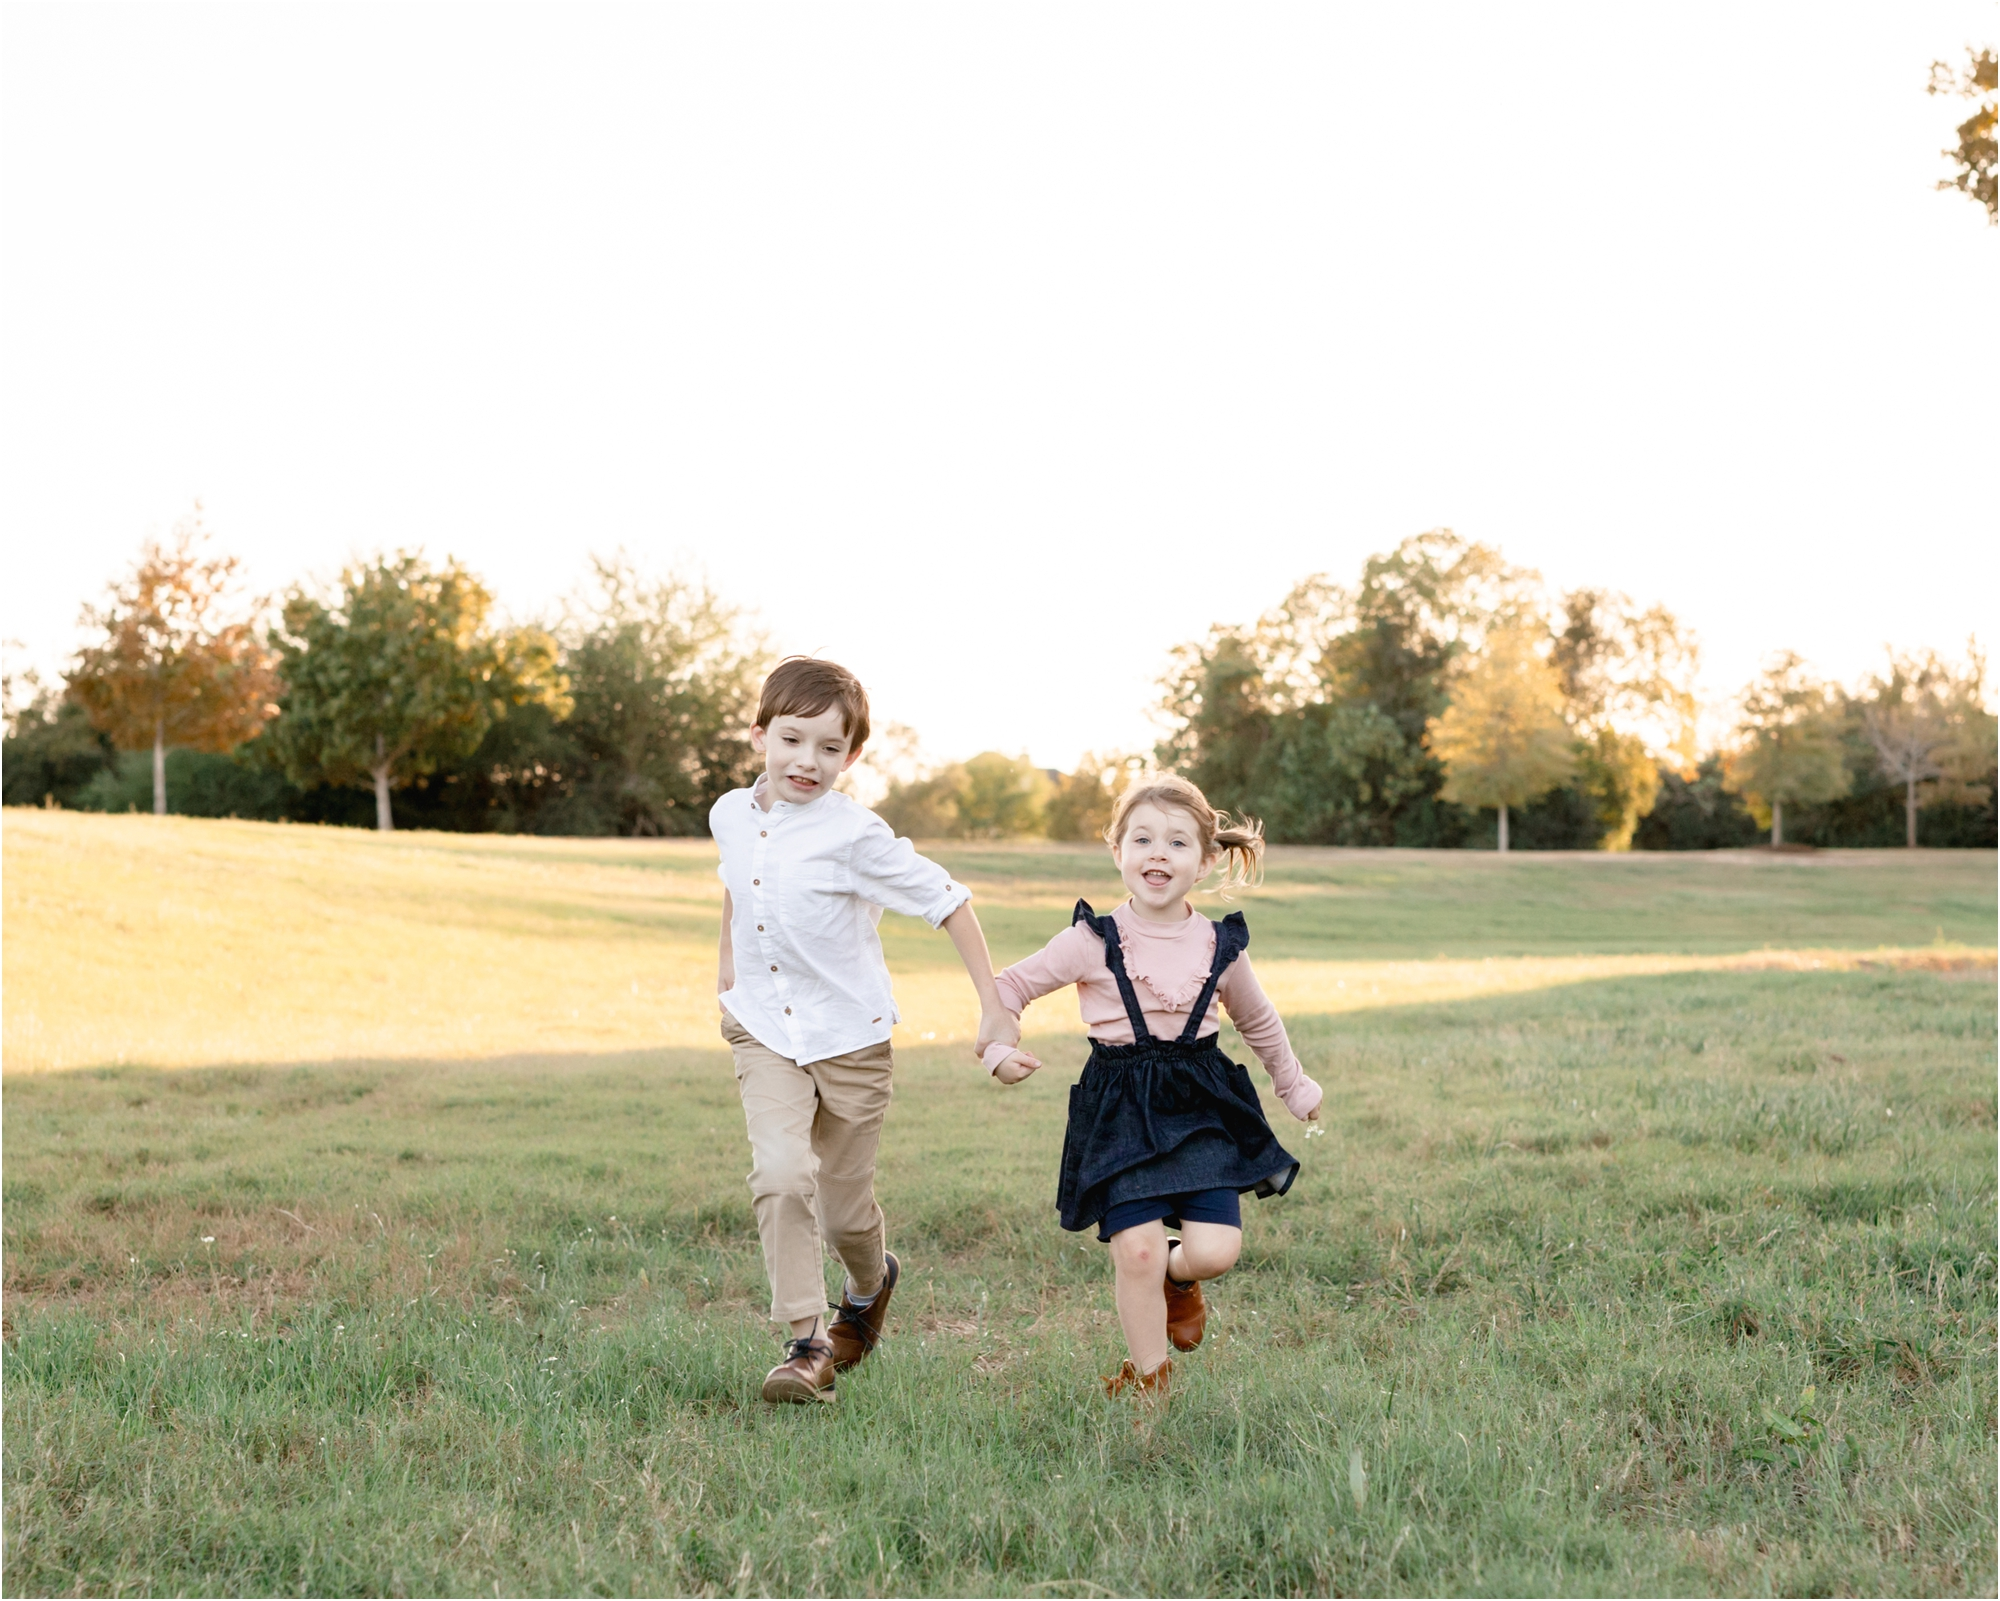 Kids running through sunlit field during family session. Photo by Lifetime of Clicks Photography.